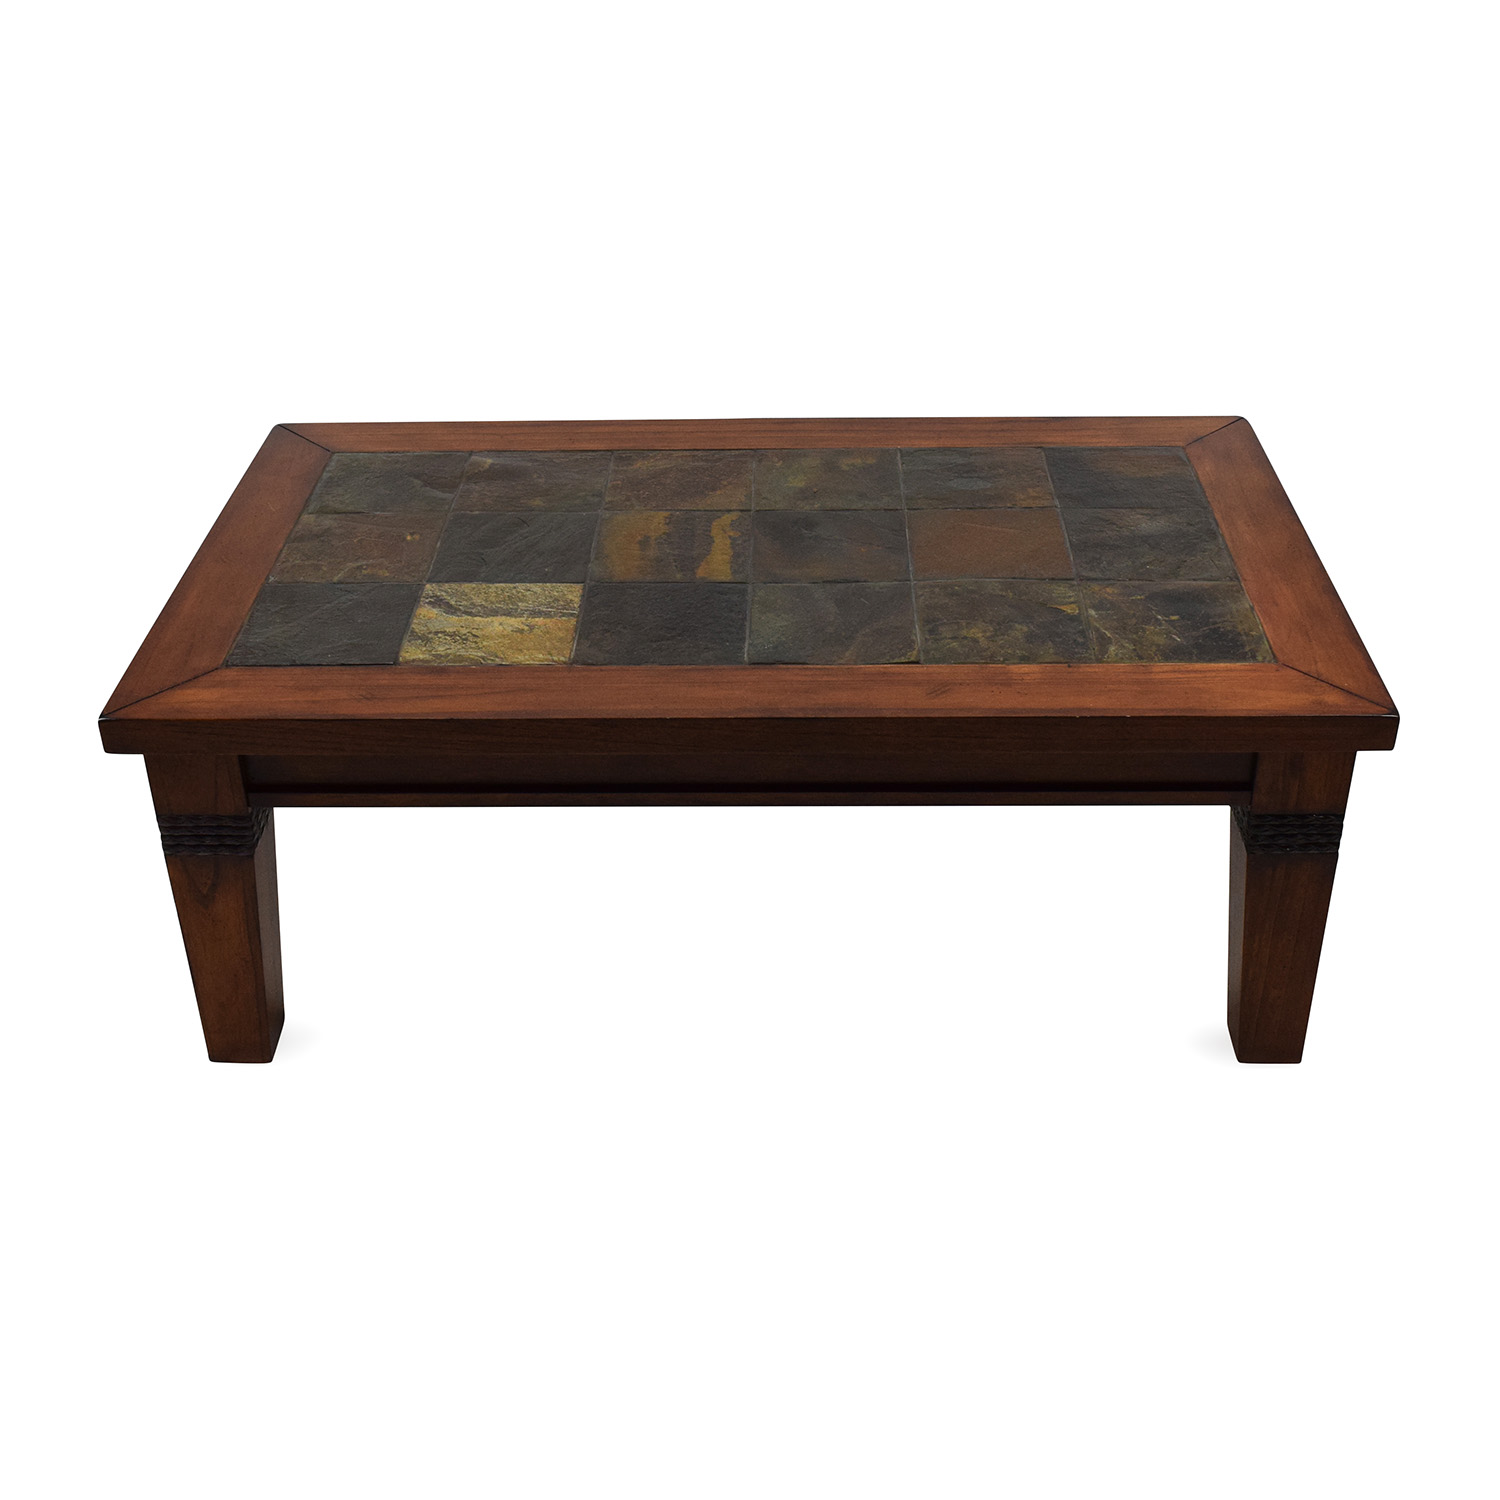 100 used furniture sale online india 77 off wooden u0026 tiled coffee table tables home Coffee tables online